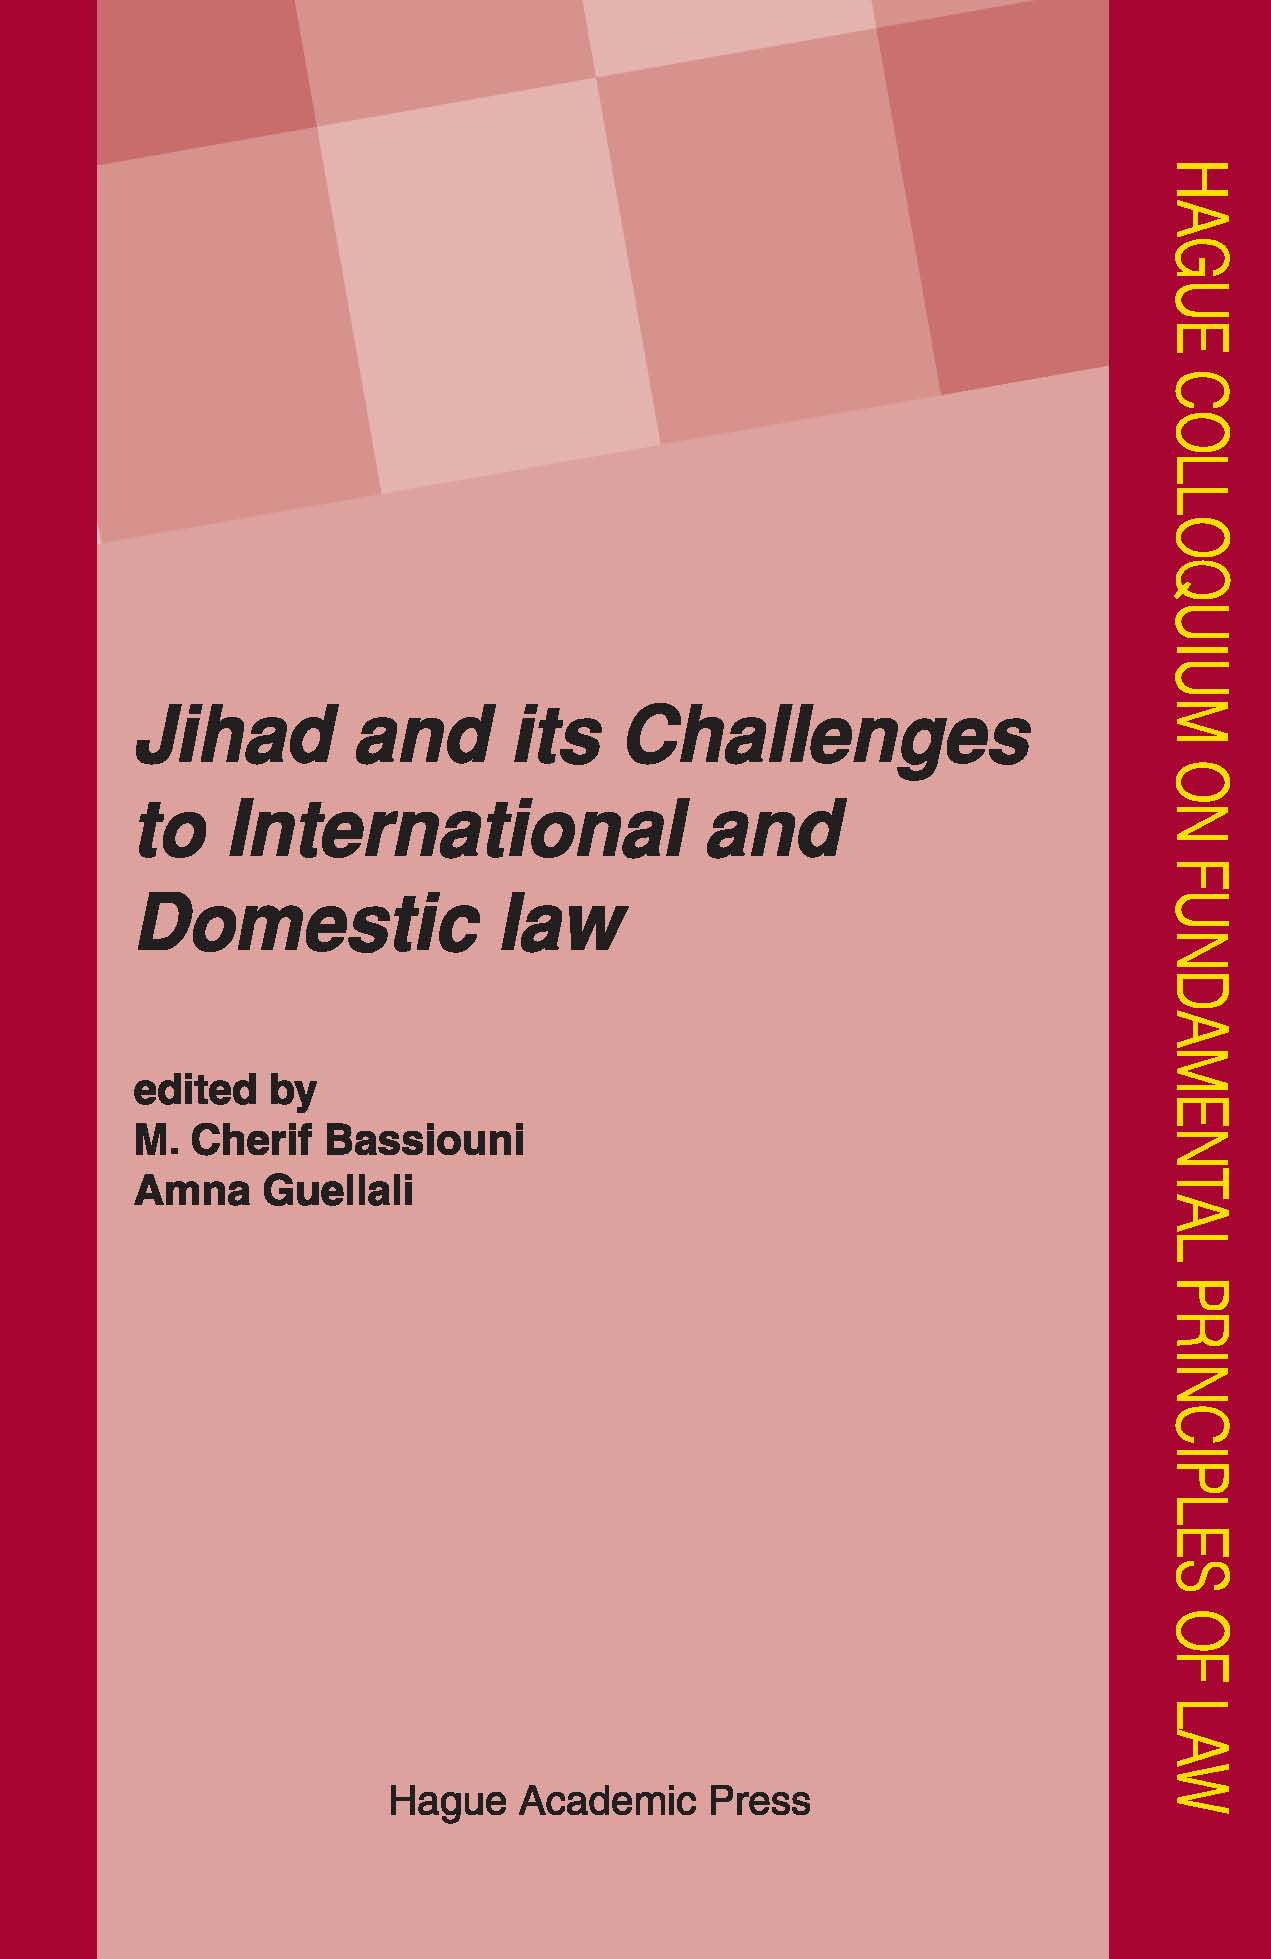 Jihad - Challenges to International and Domestic Law